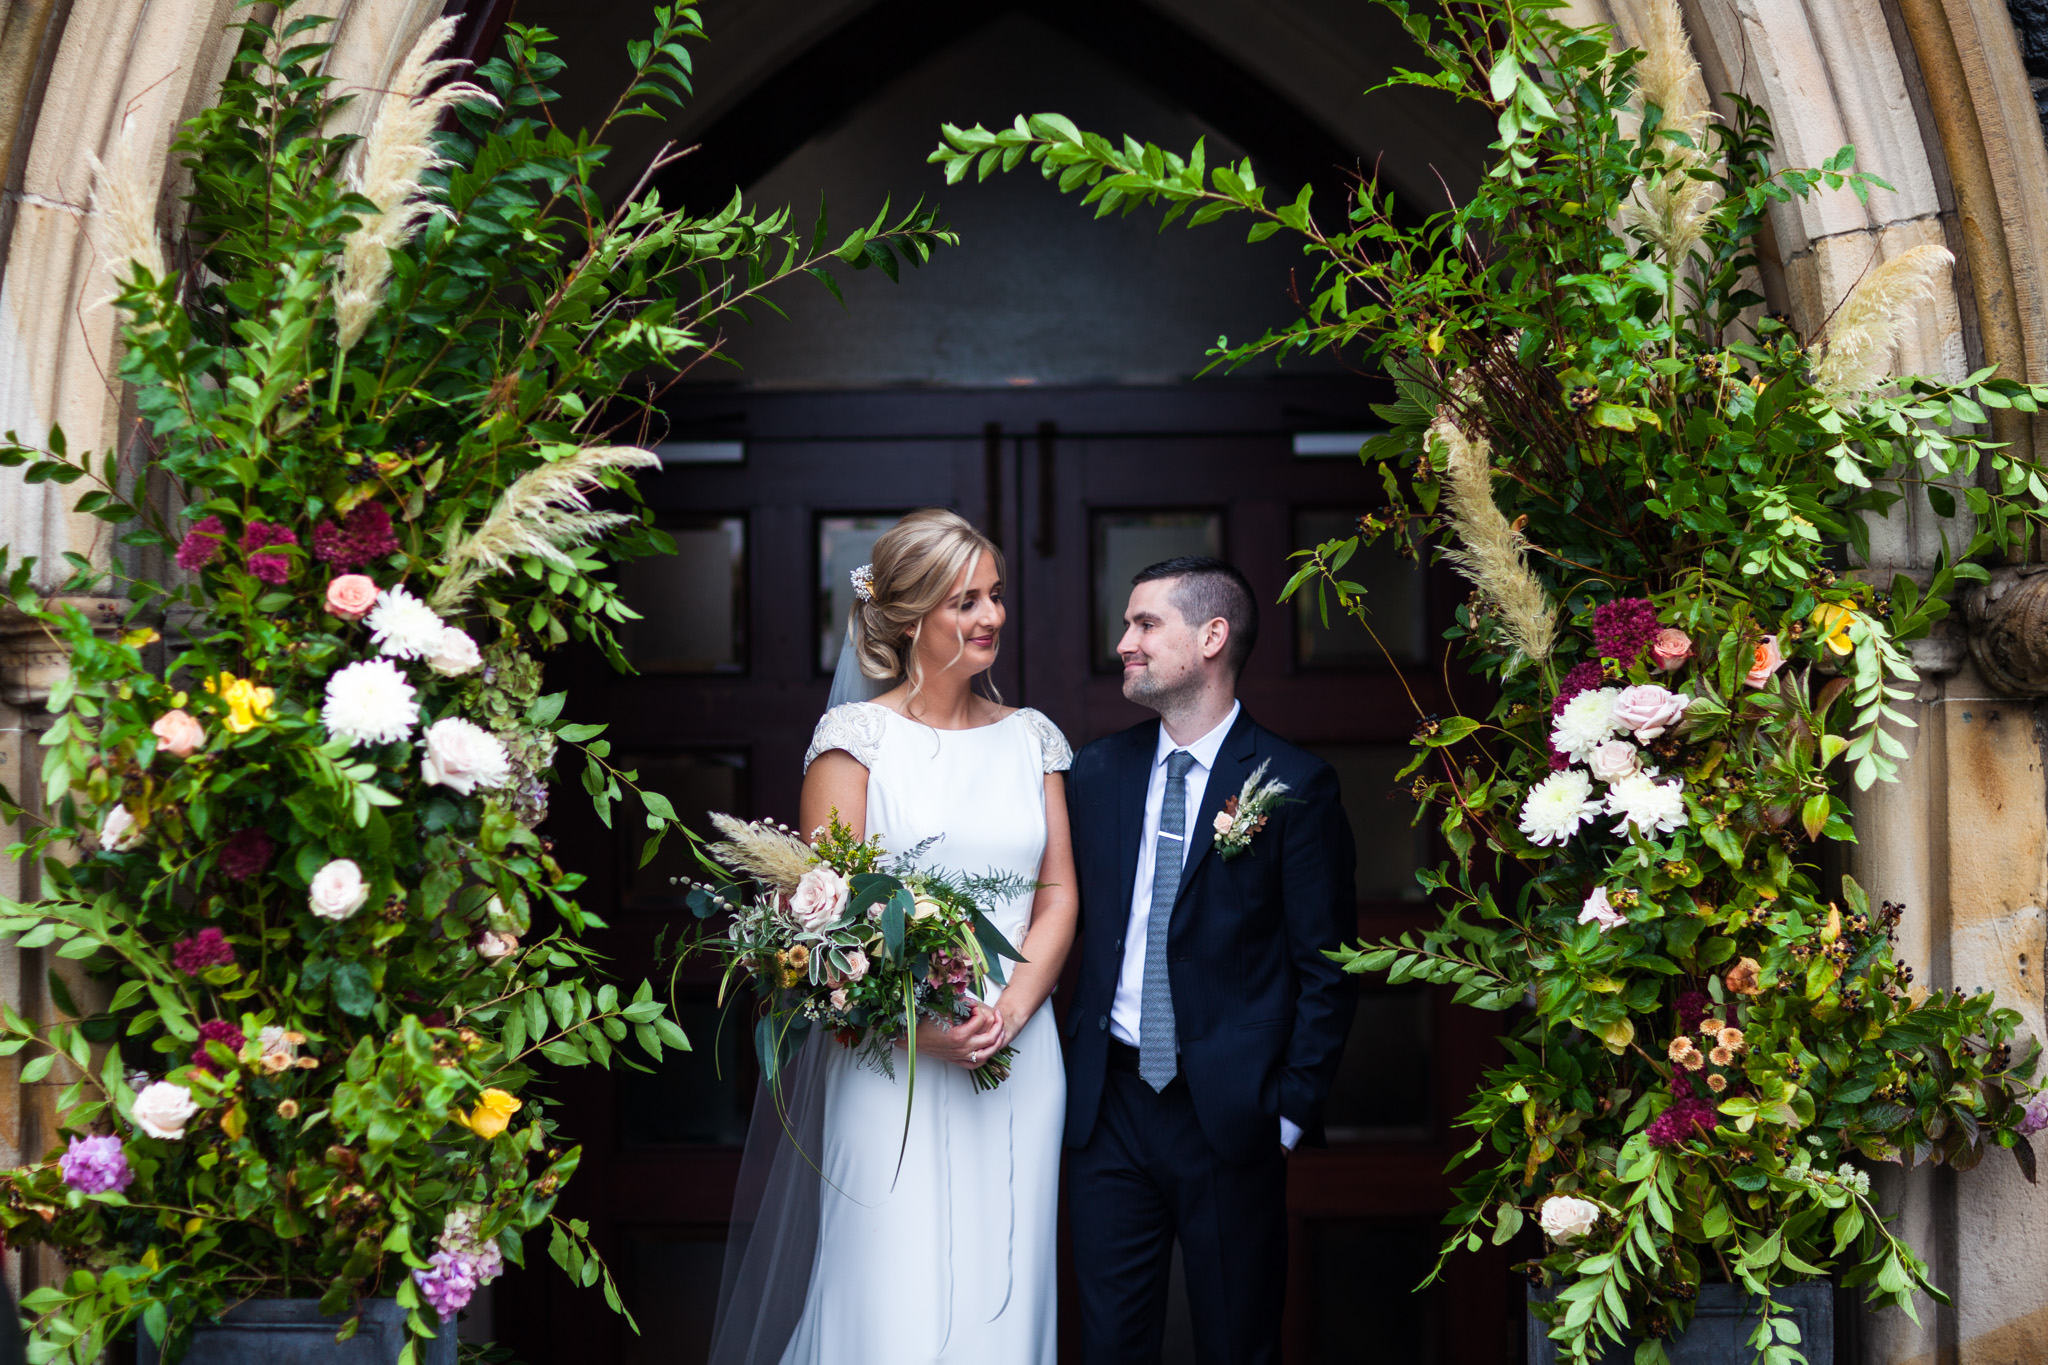 Mark_Barnes_Northern_Ireland_Wedding_Photography_Ballyscullion_Park_Wedding_Photography_Stef&Bobby-26.jpg